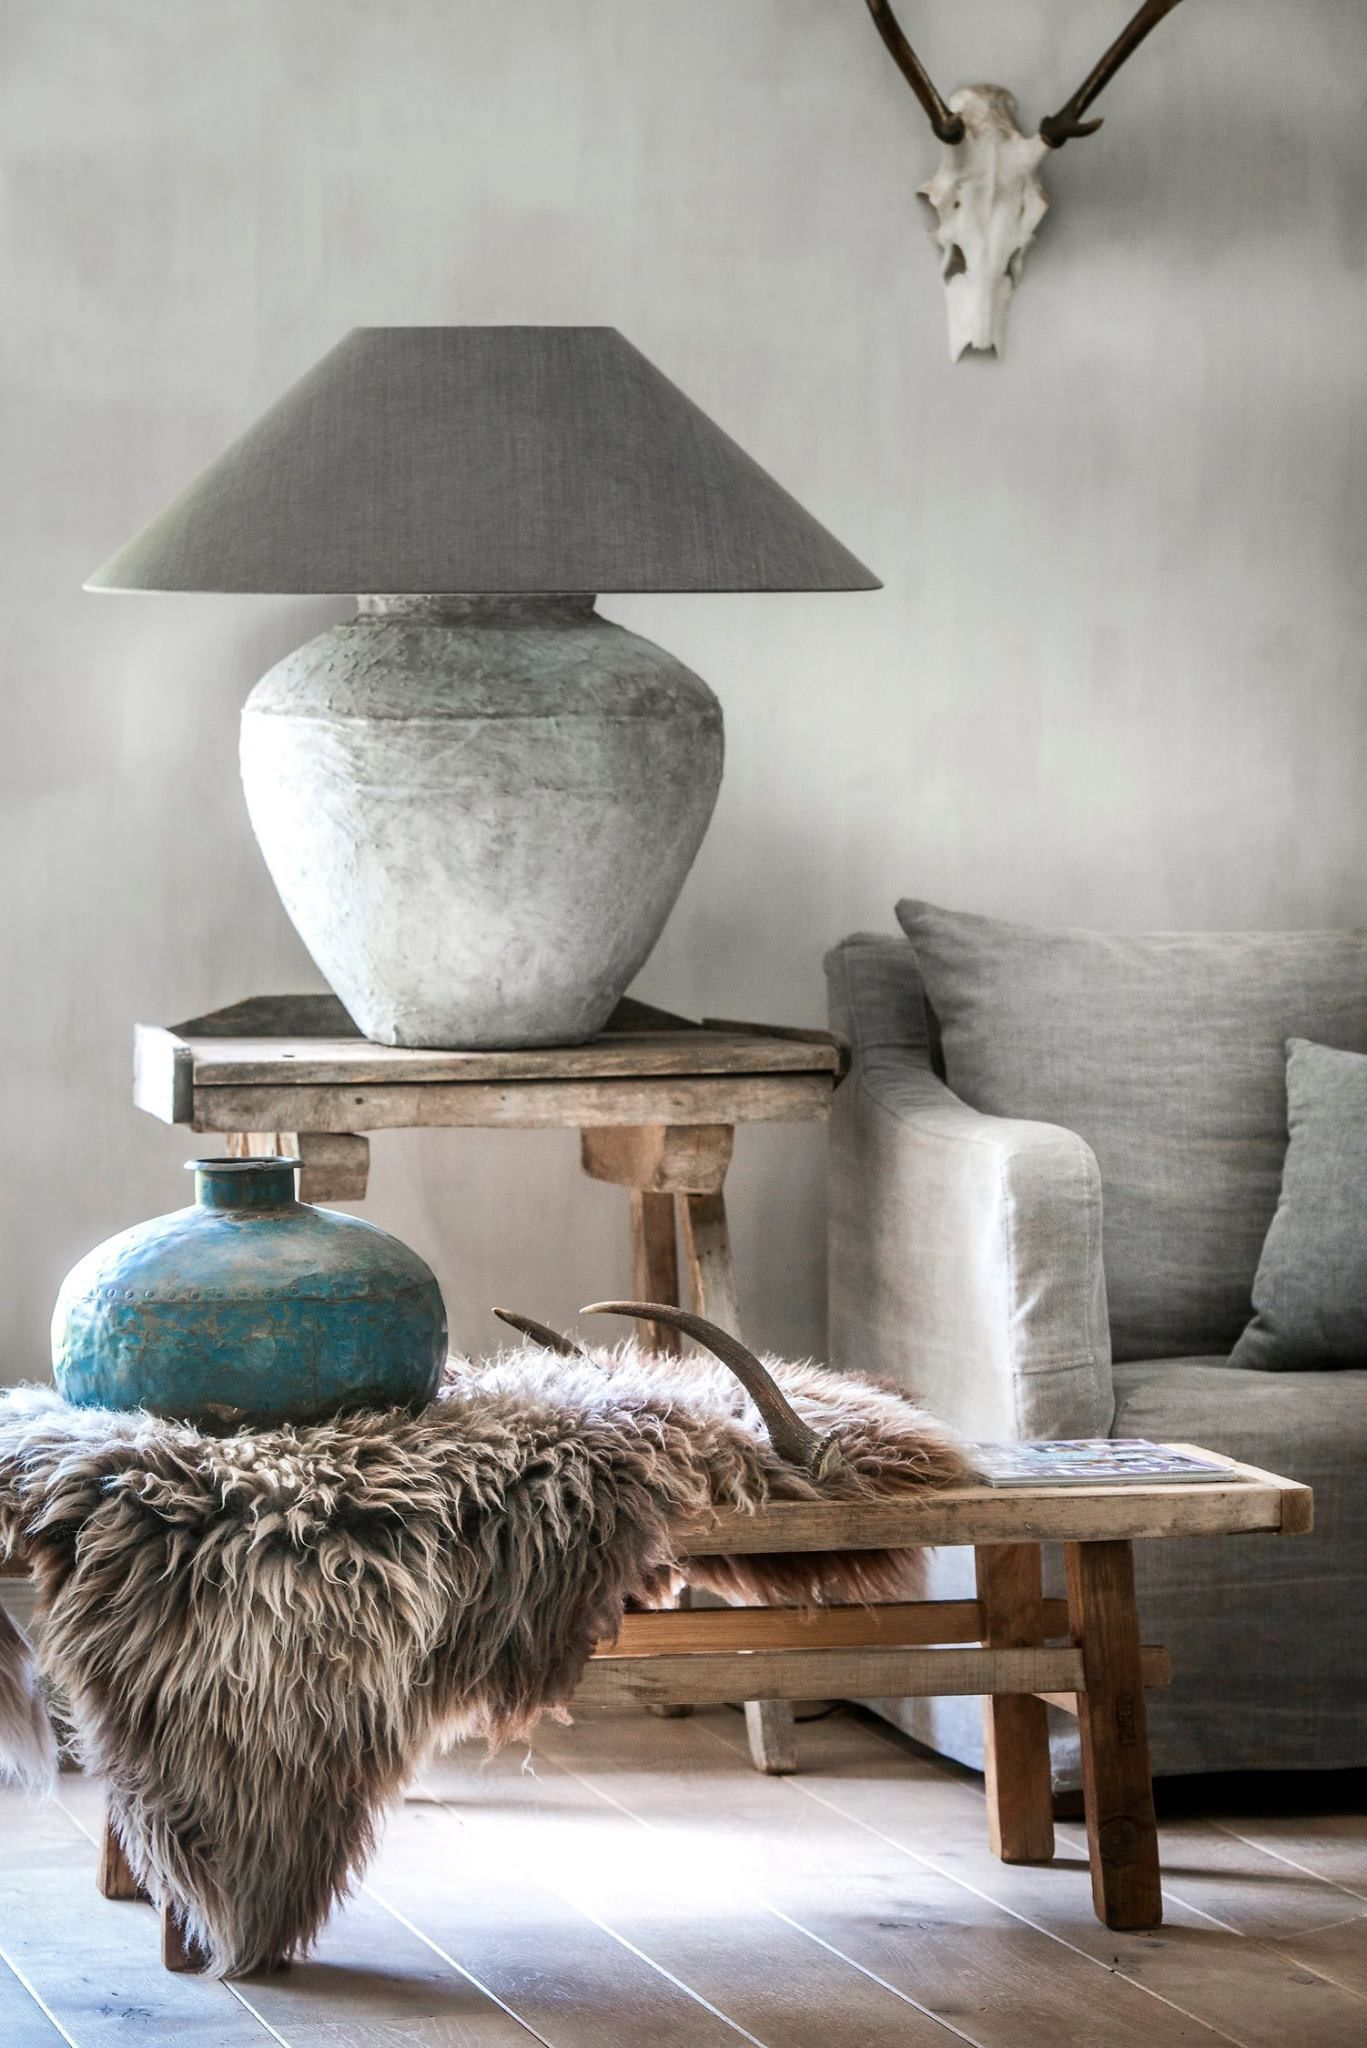 a touch of boho | A Life Imagined | Pinterest | Luces, Cerámica y ...